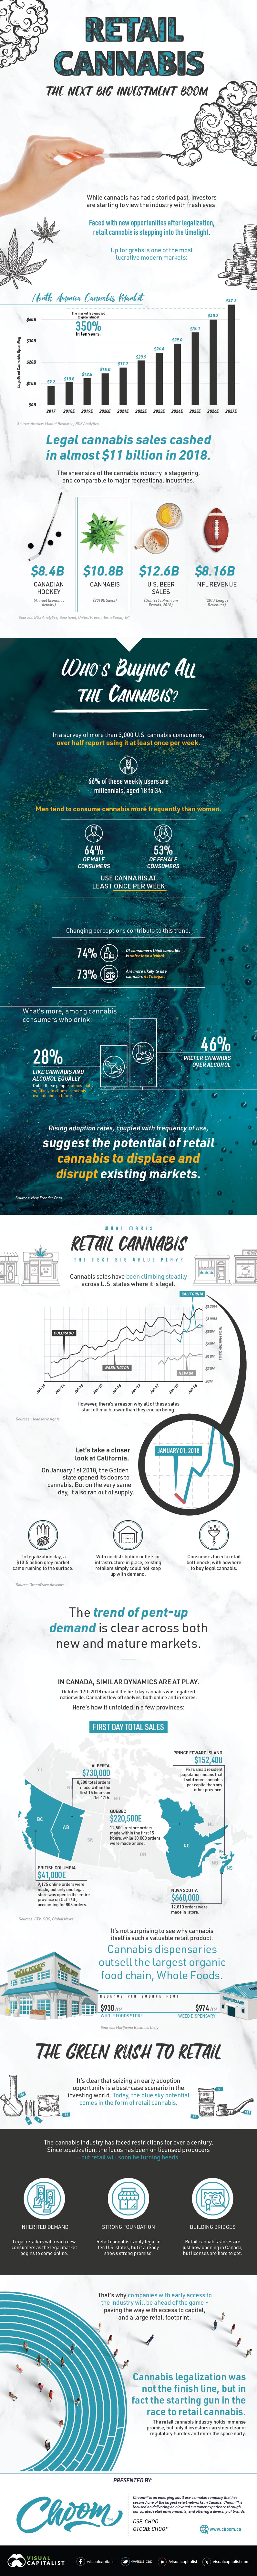 retail-cannabis-the-next-big-investment-boom-v6